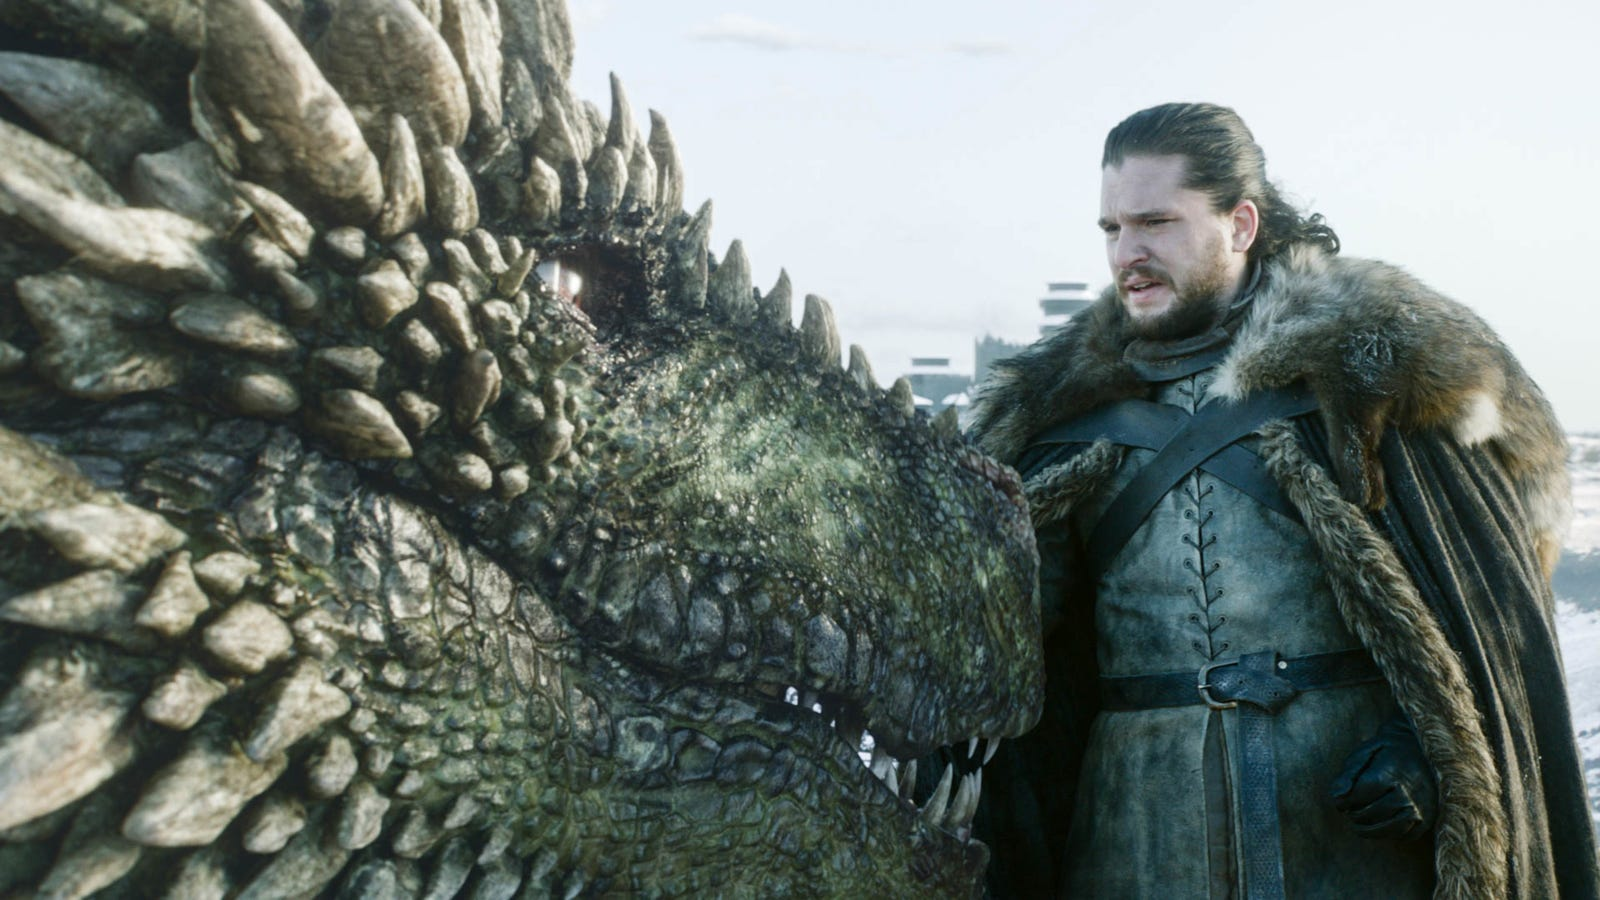 AT&T Screwed Up And Streamed Game of Thrones Hours Before Its Release